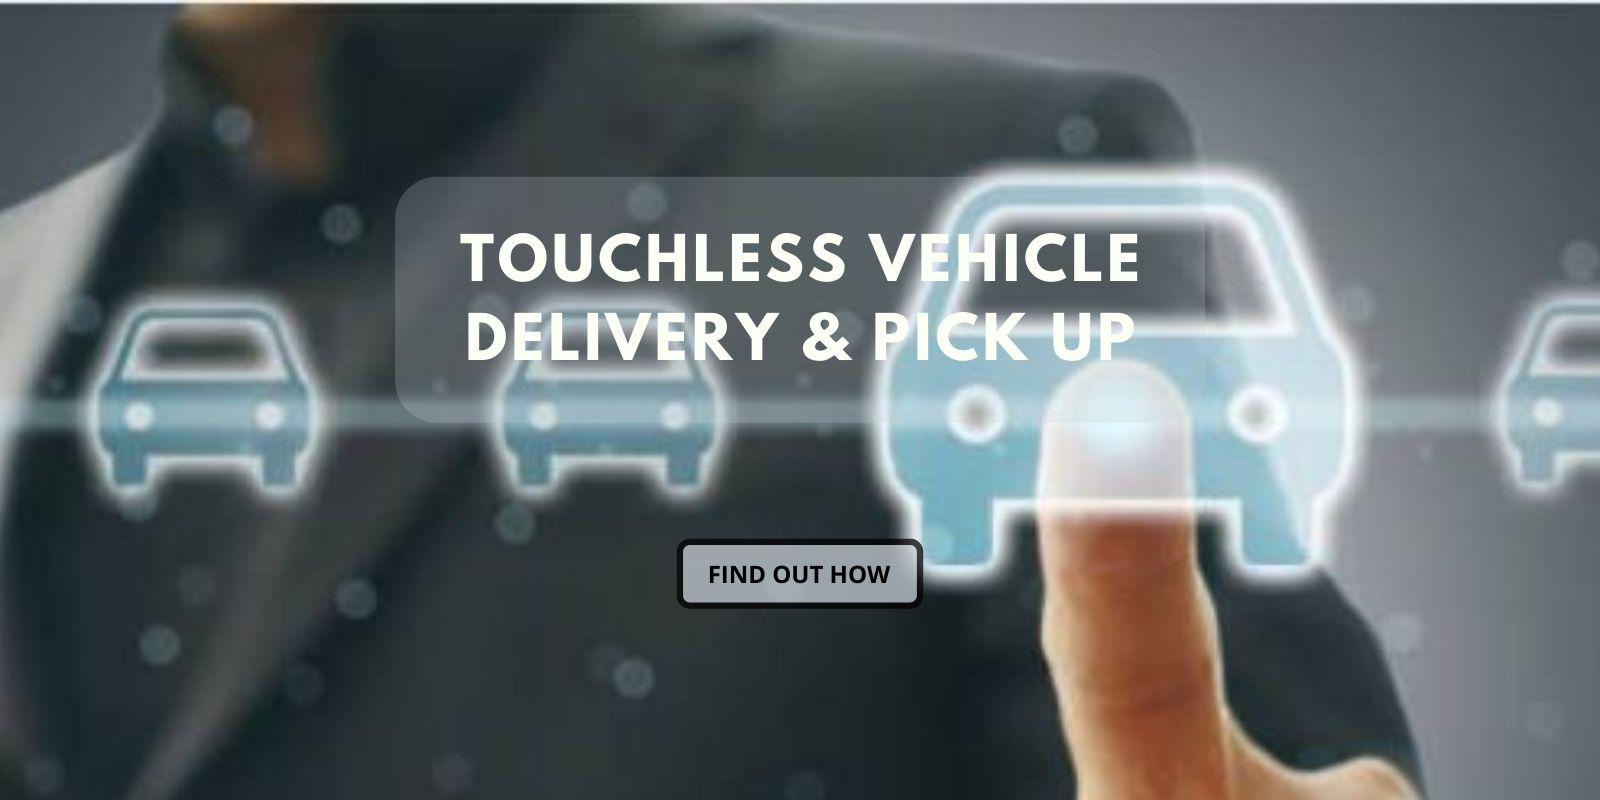 Touchless vehicle delivery and pickup